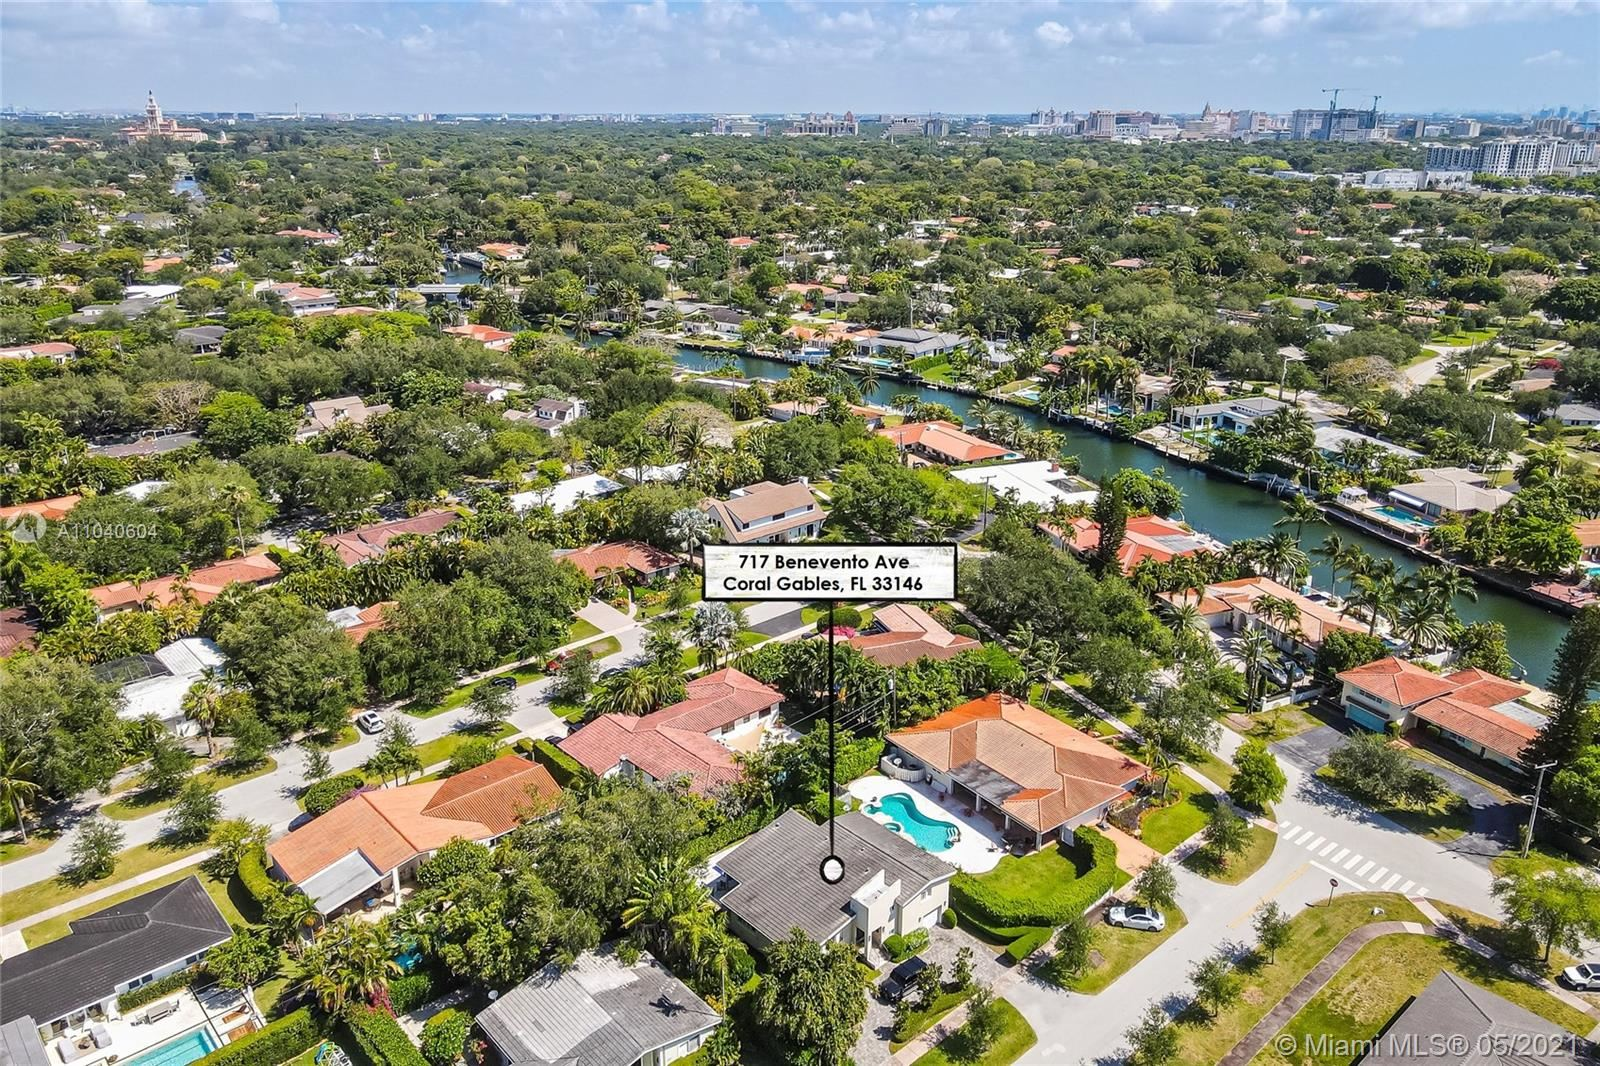 Photo of 717 Benevento Ave, Coral Gables, FL 33146 (MLS # A11040604)